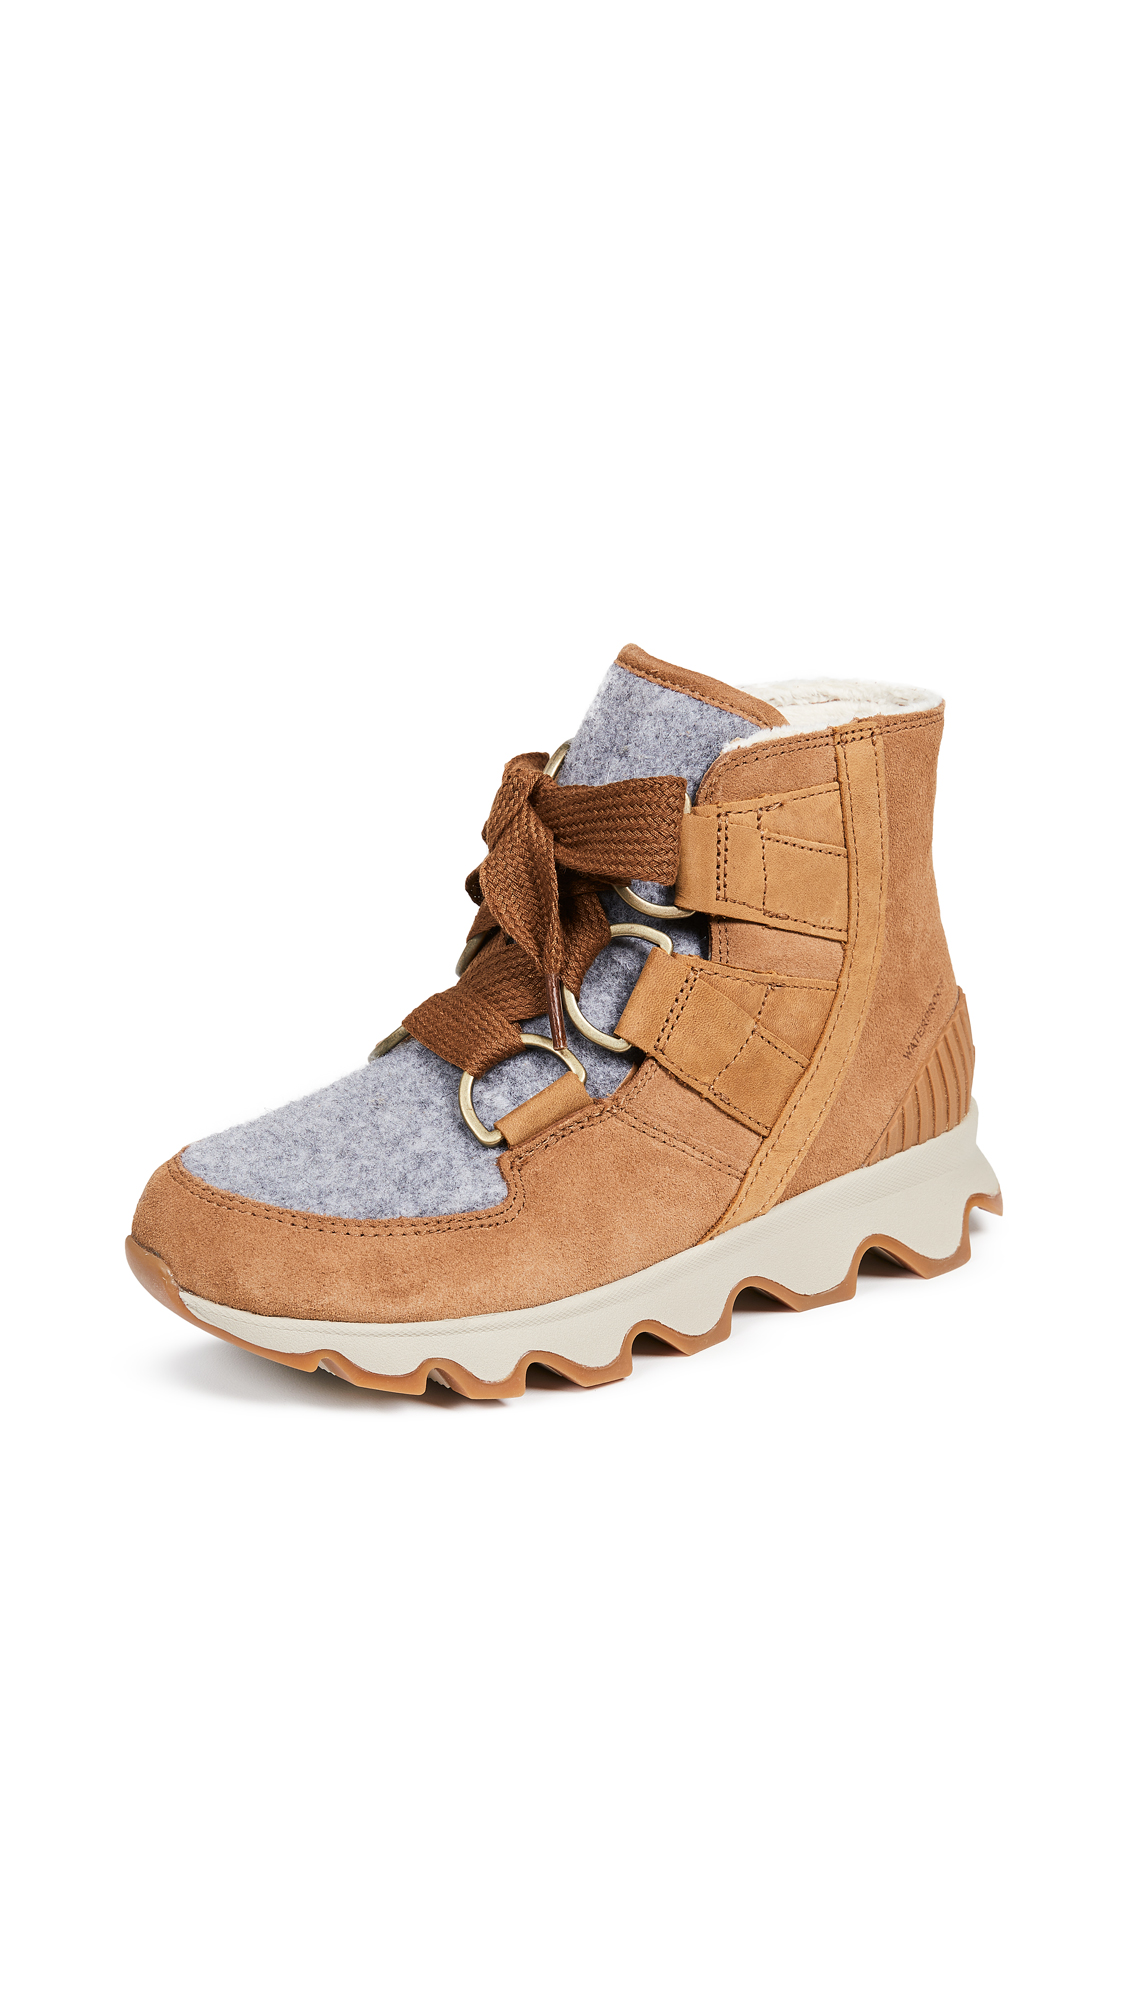 Sorel Kinetic Short Lace Up Booties - Camel Brown